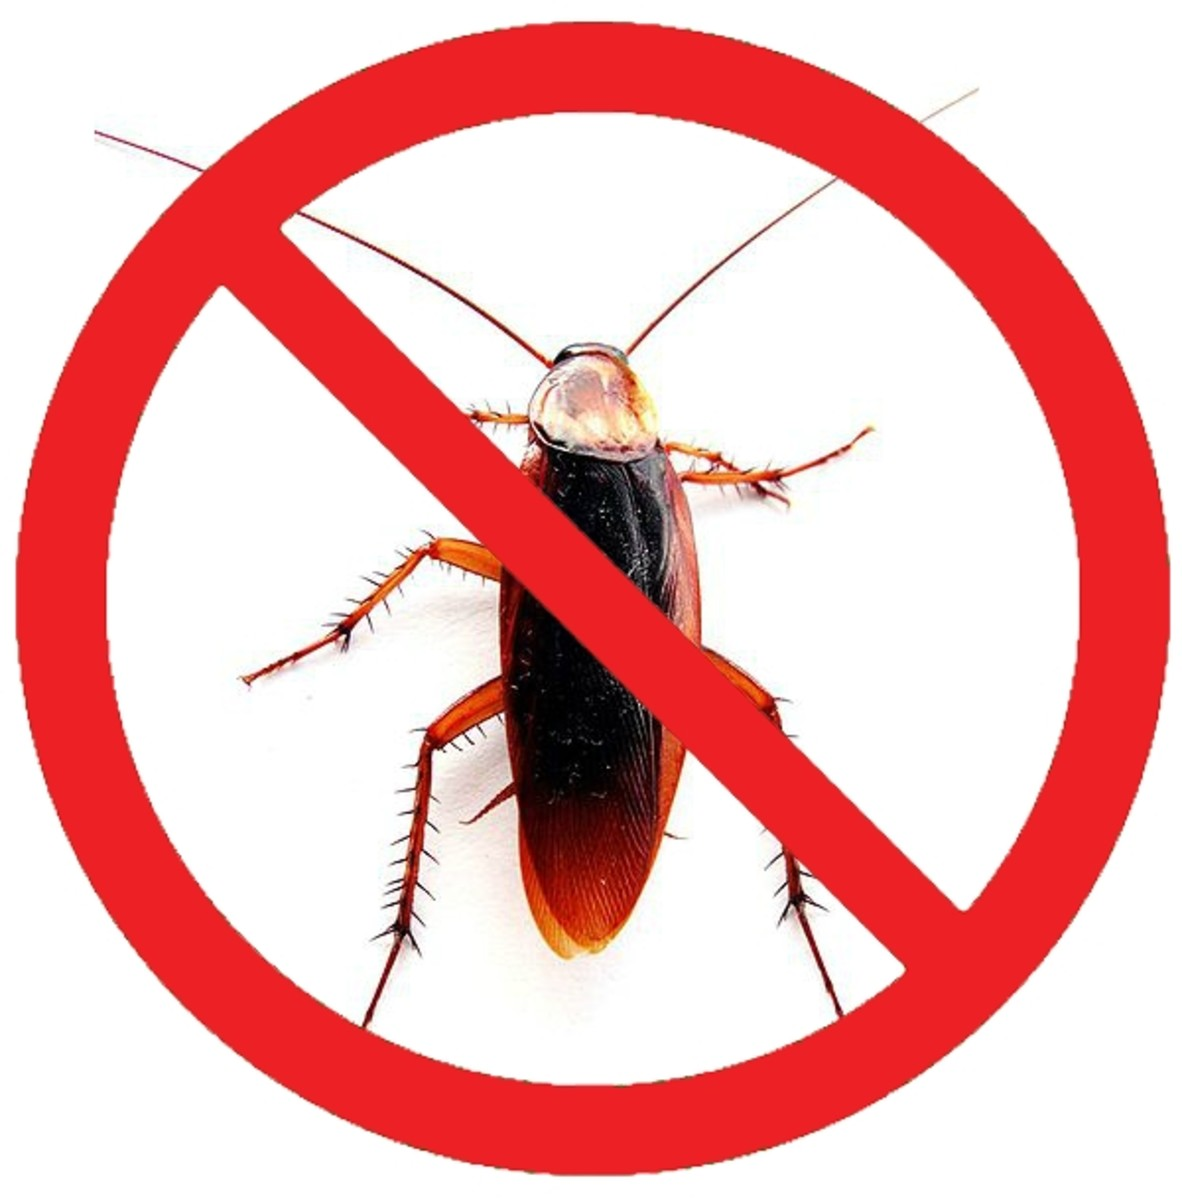 Get Rid of Roaches Using Home Methods